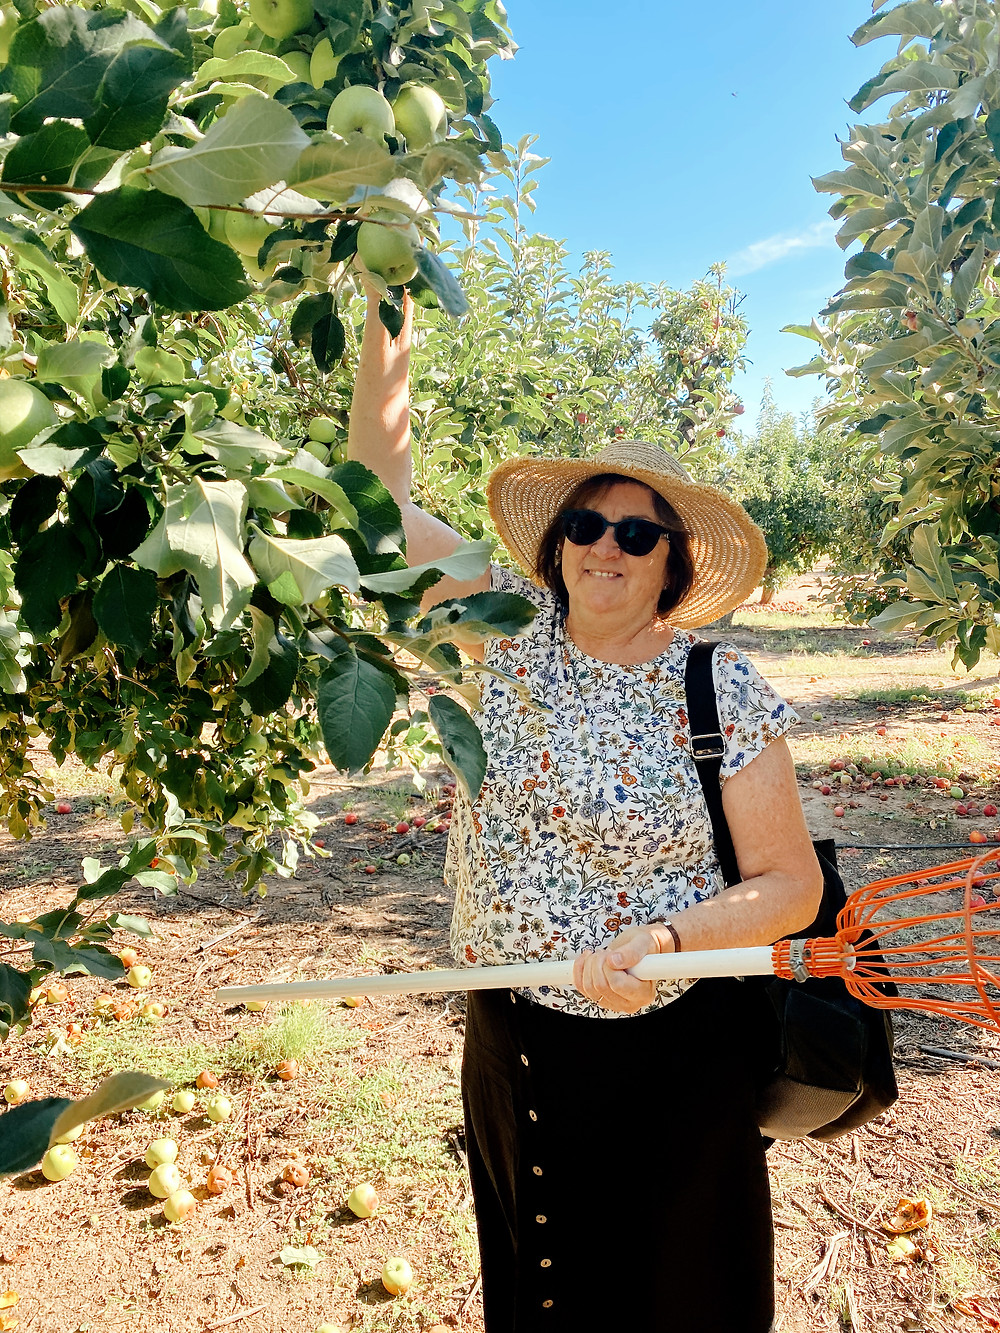 Picking apples at Apple Annie's Orchard in Willcox, Arizona